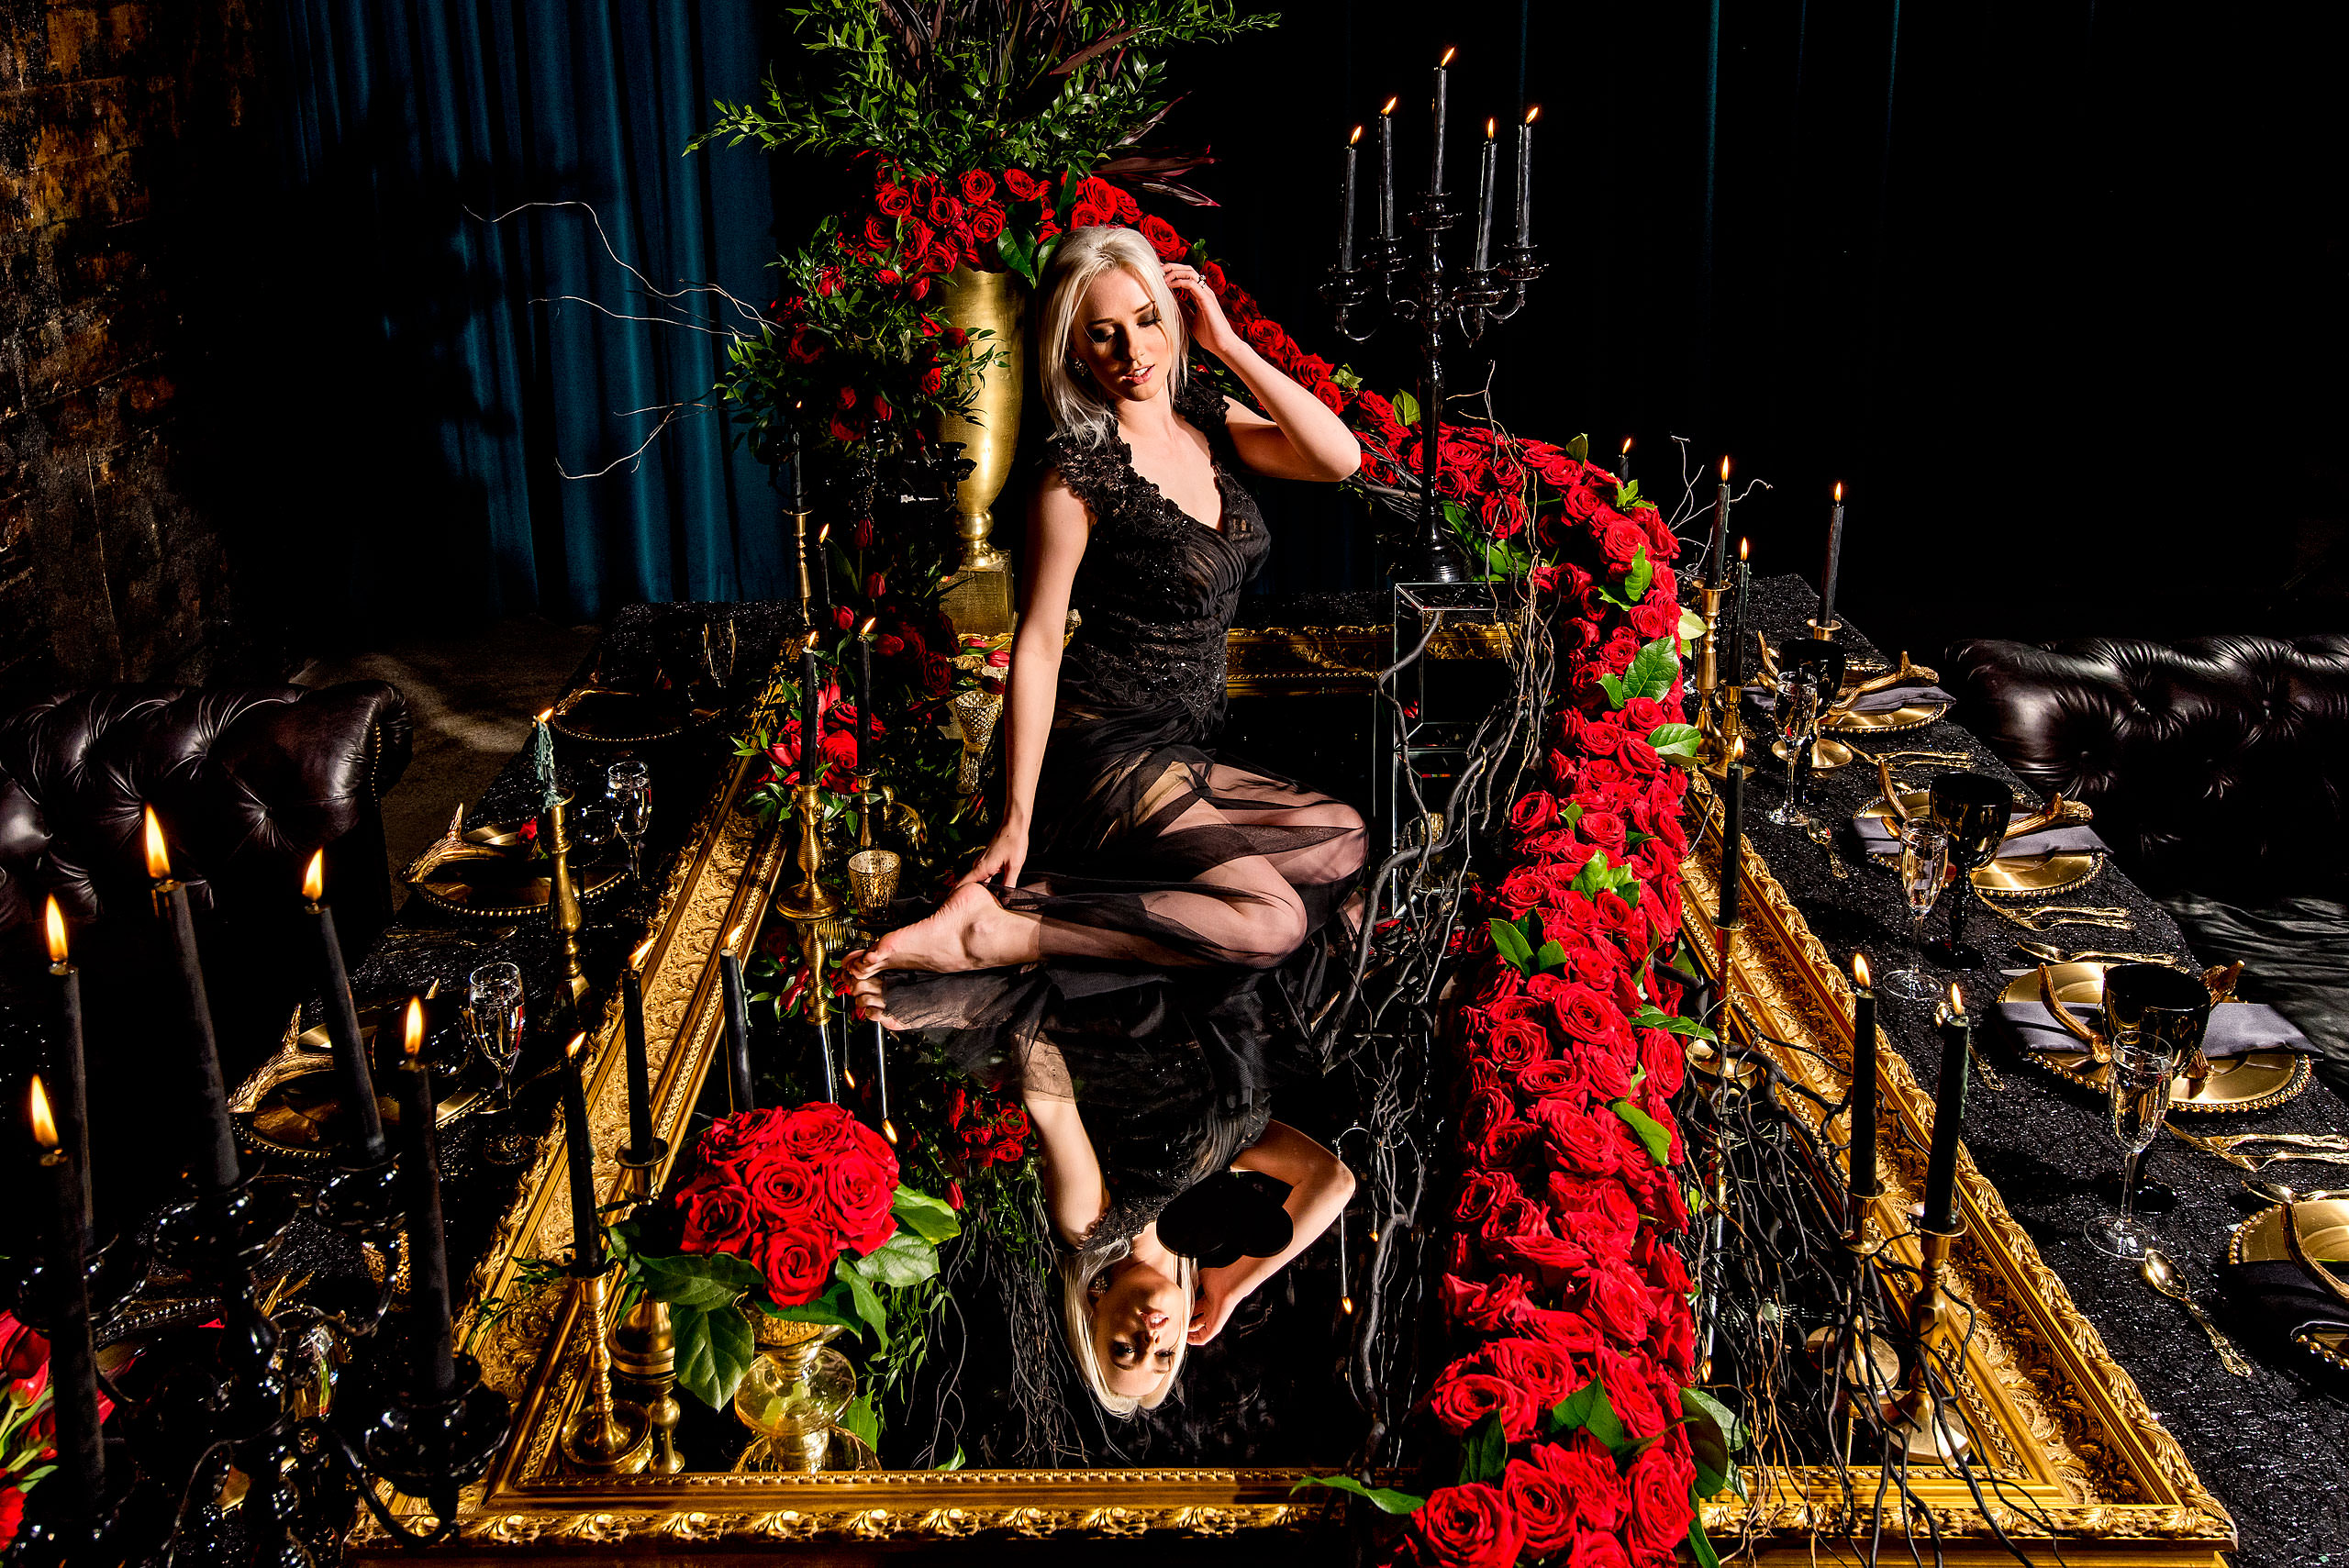 a model posing on a mirror surrounded by roses by calgary confetti fashion photographer sean leblanc